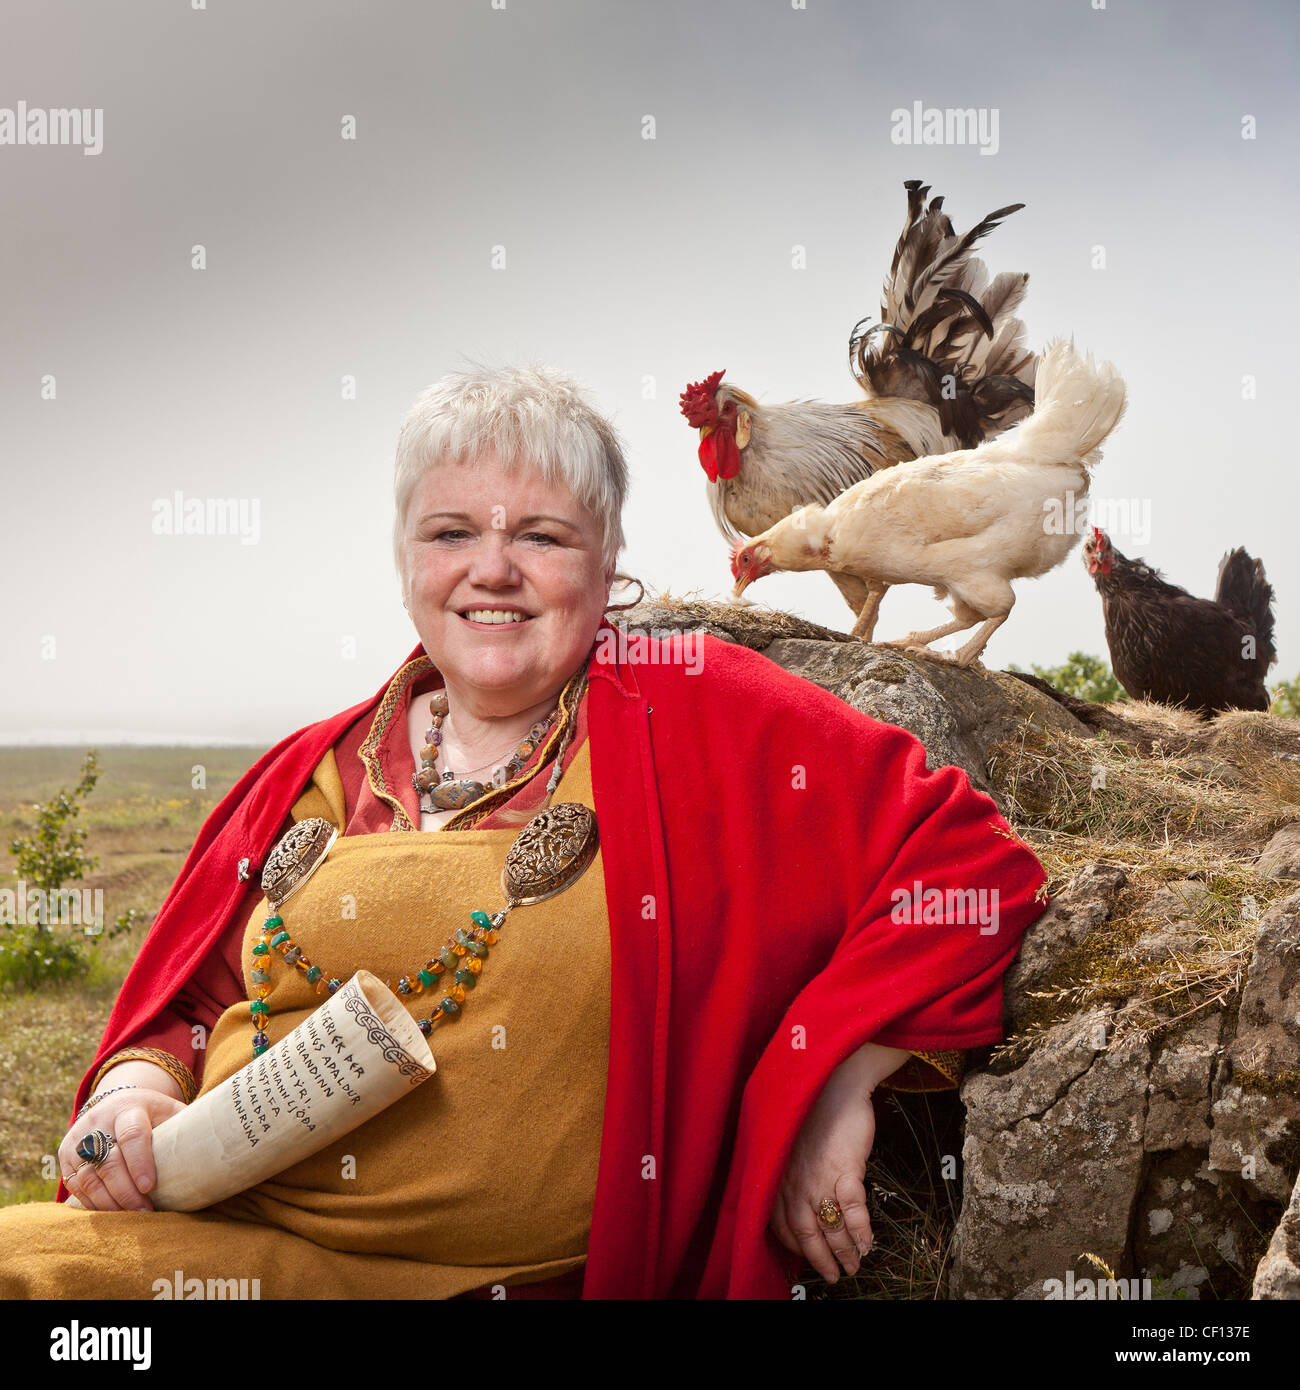 Icelandic Female priest on her farm with chickens, Hvalfjordur, Iceland - Stock Image